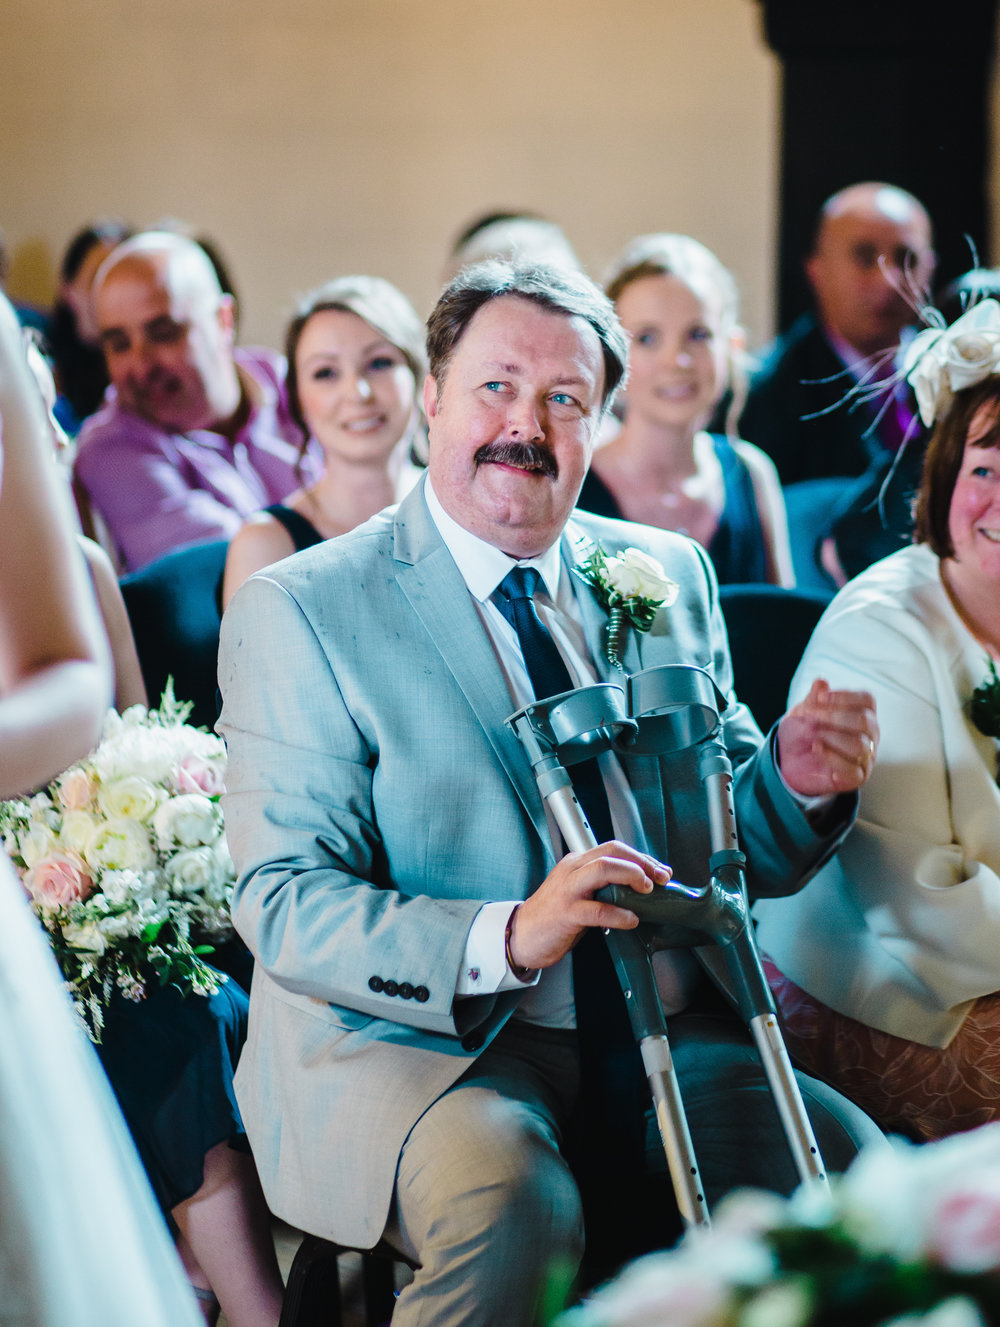 Smile from the brides father- Wedding photography in Lancashire, Preston